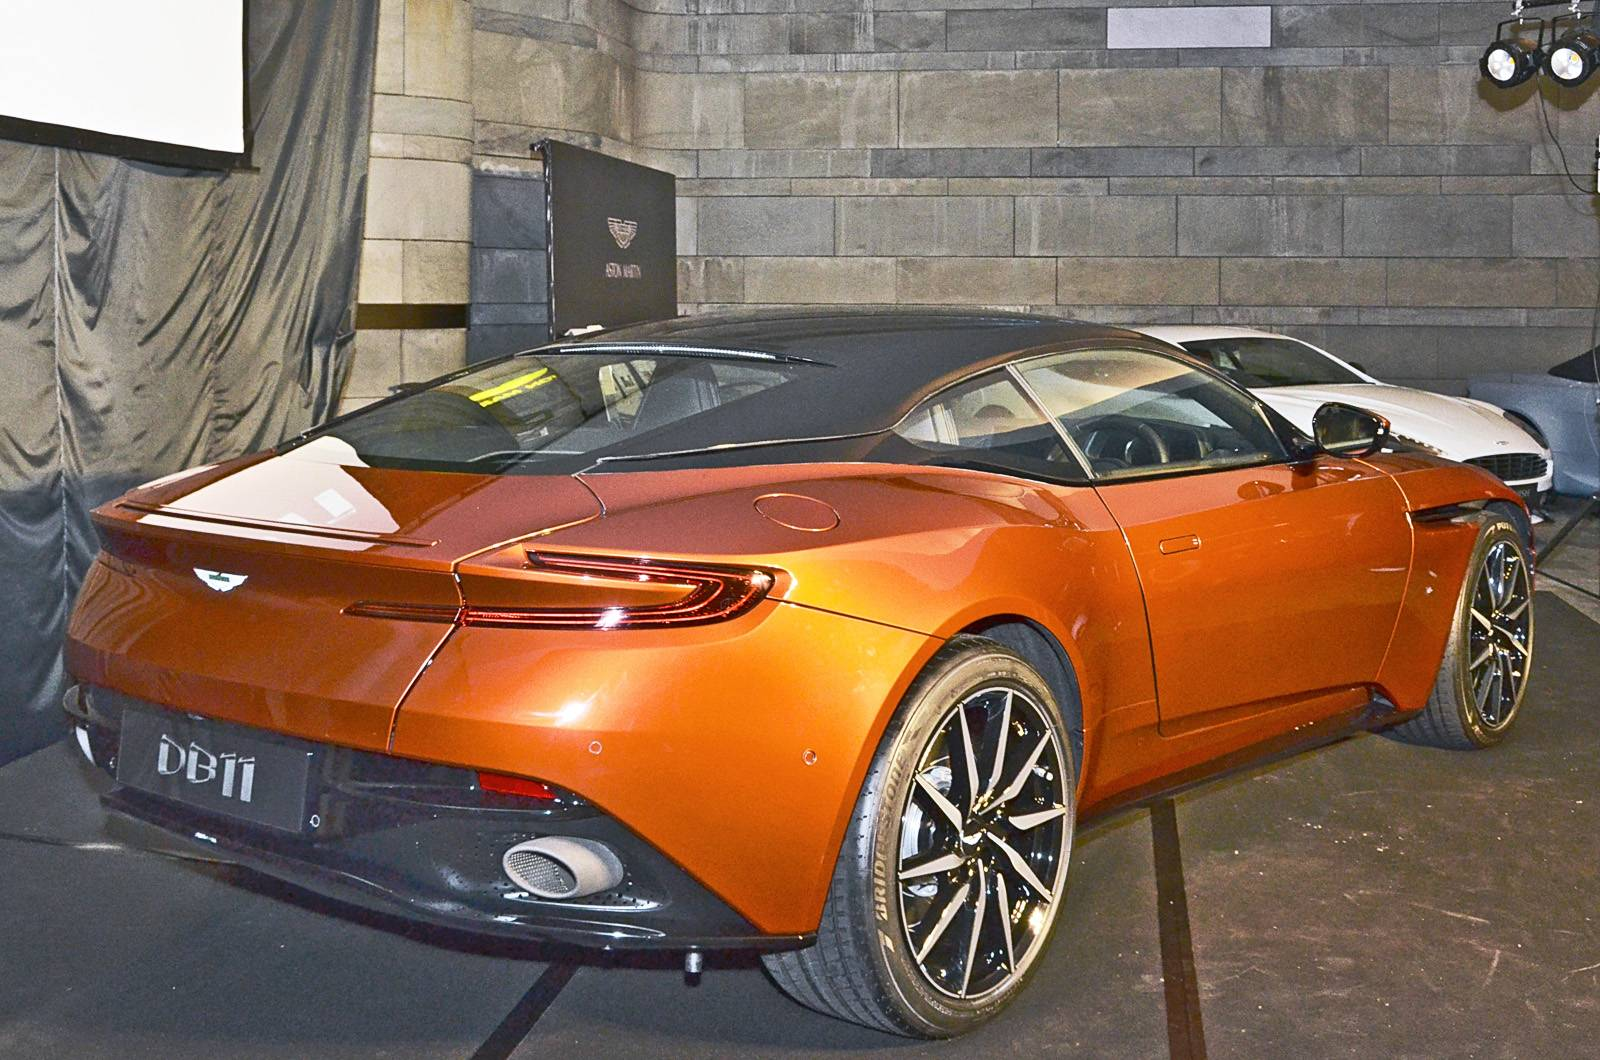 aston martin db11 launched in hong kong gtspirit. Black Bedroom Furniture Sets. Home Design Ideas